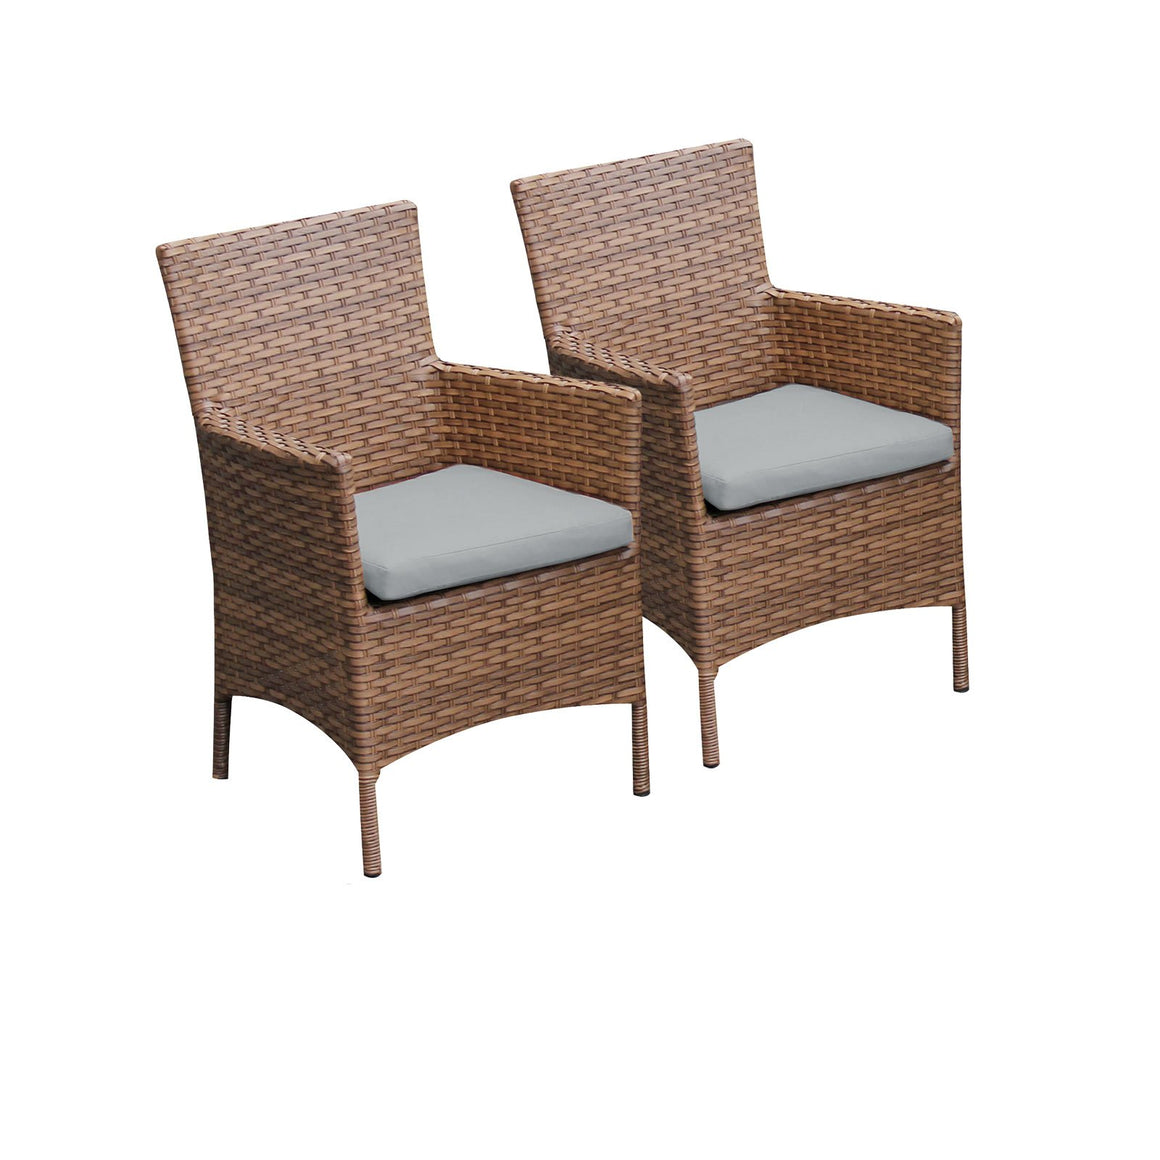 2 Laguna Dining Chairs With Arms , TK Classics- grayburd